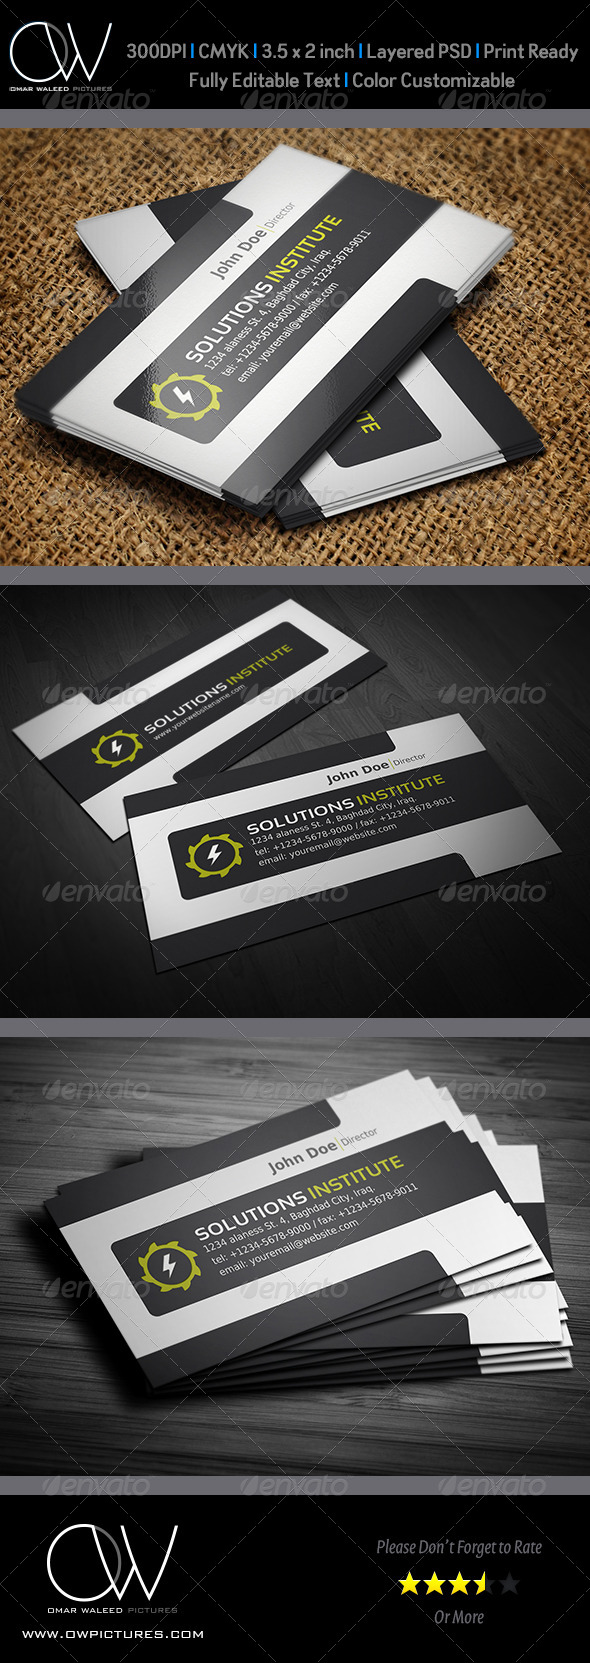 GraphicRiver Corporate Business Card Vol.23 4643536